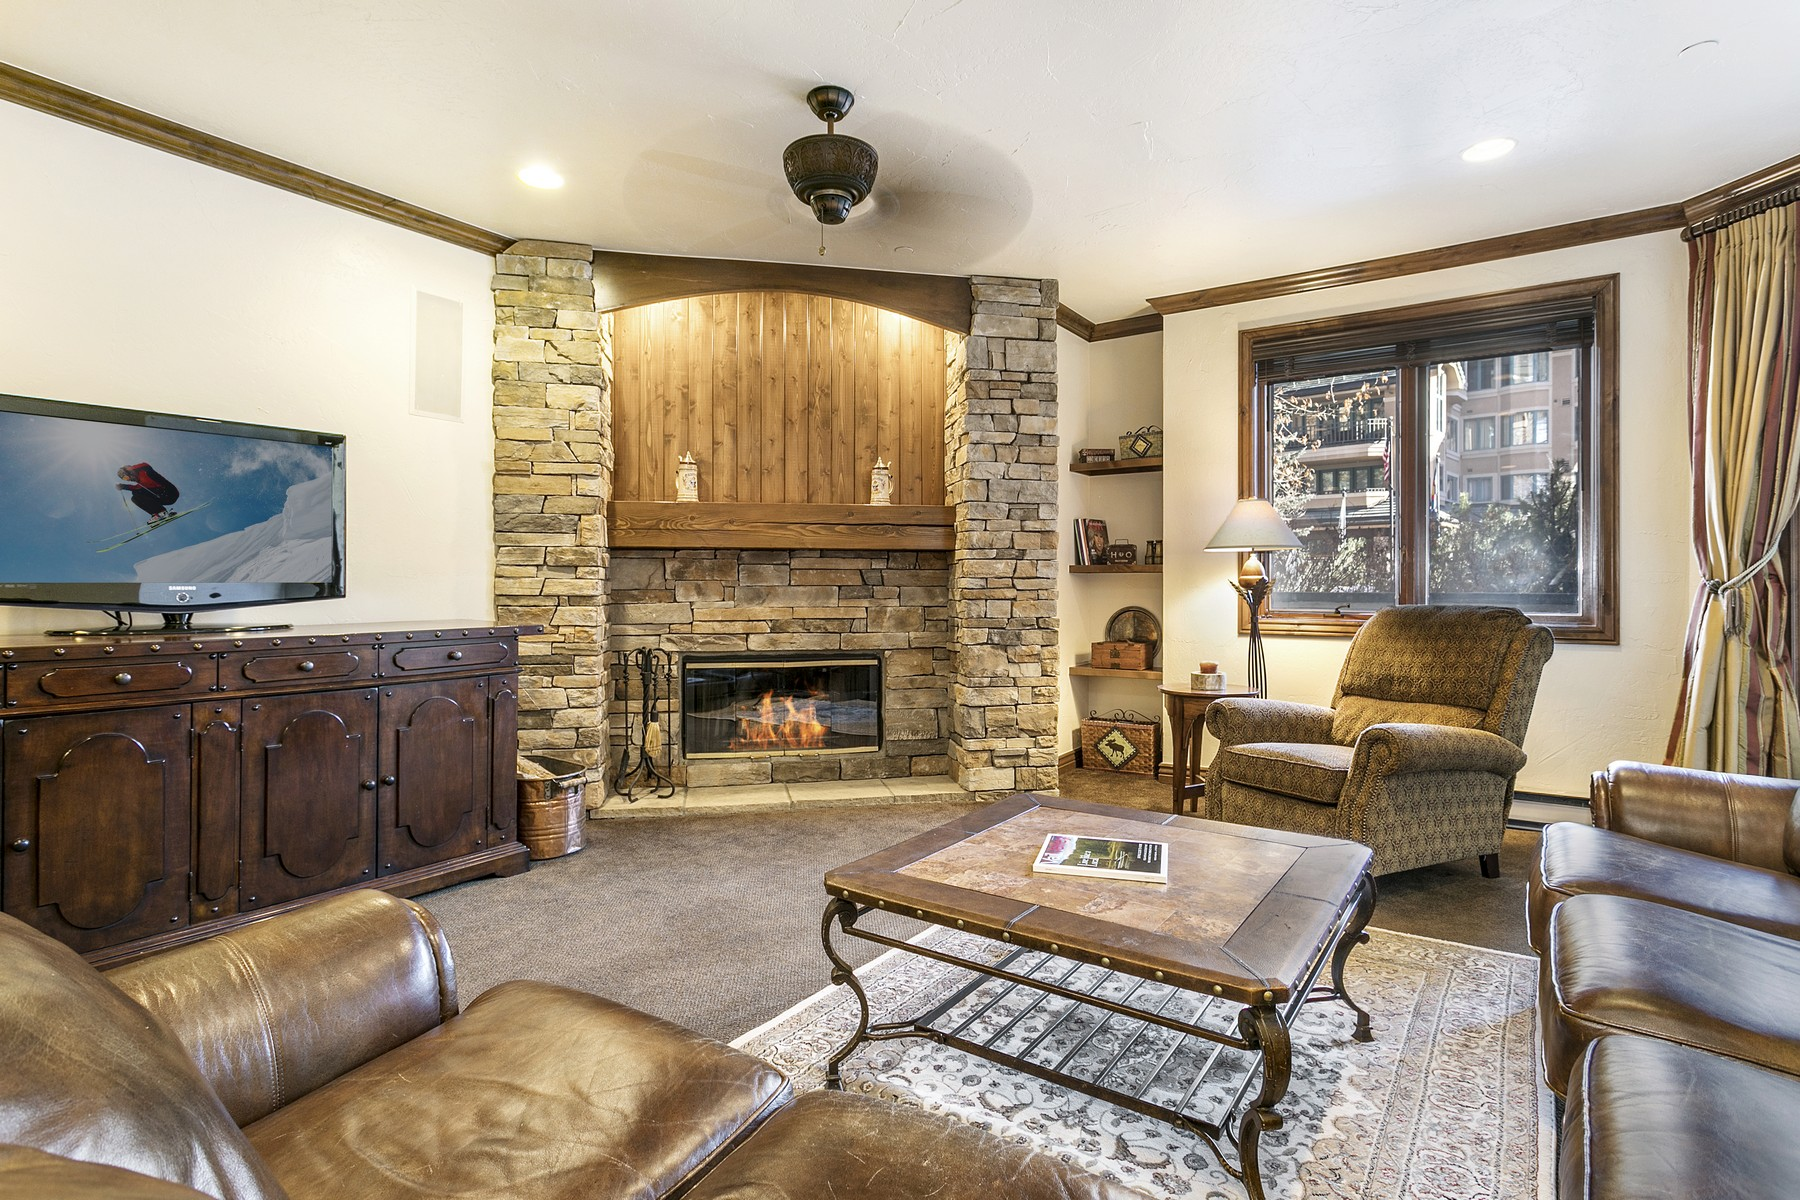 Property for Active at Strawberry Park Condo #101 1280 Village Road #101 Beaver Creek, Colorado 81620 United States